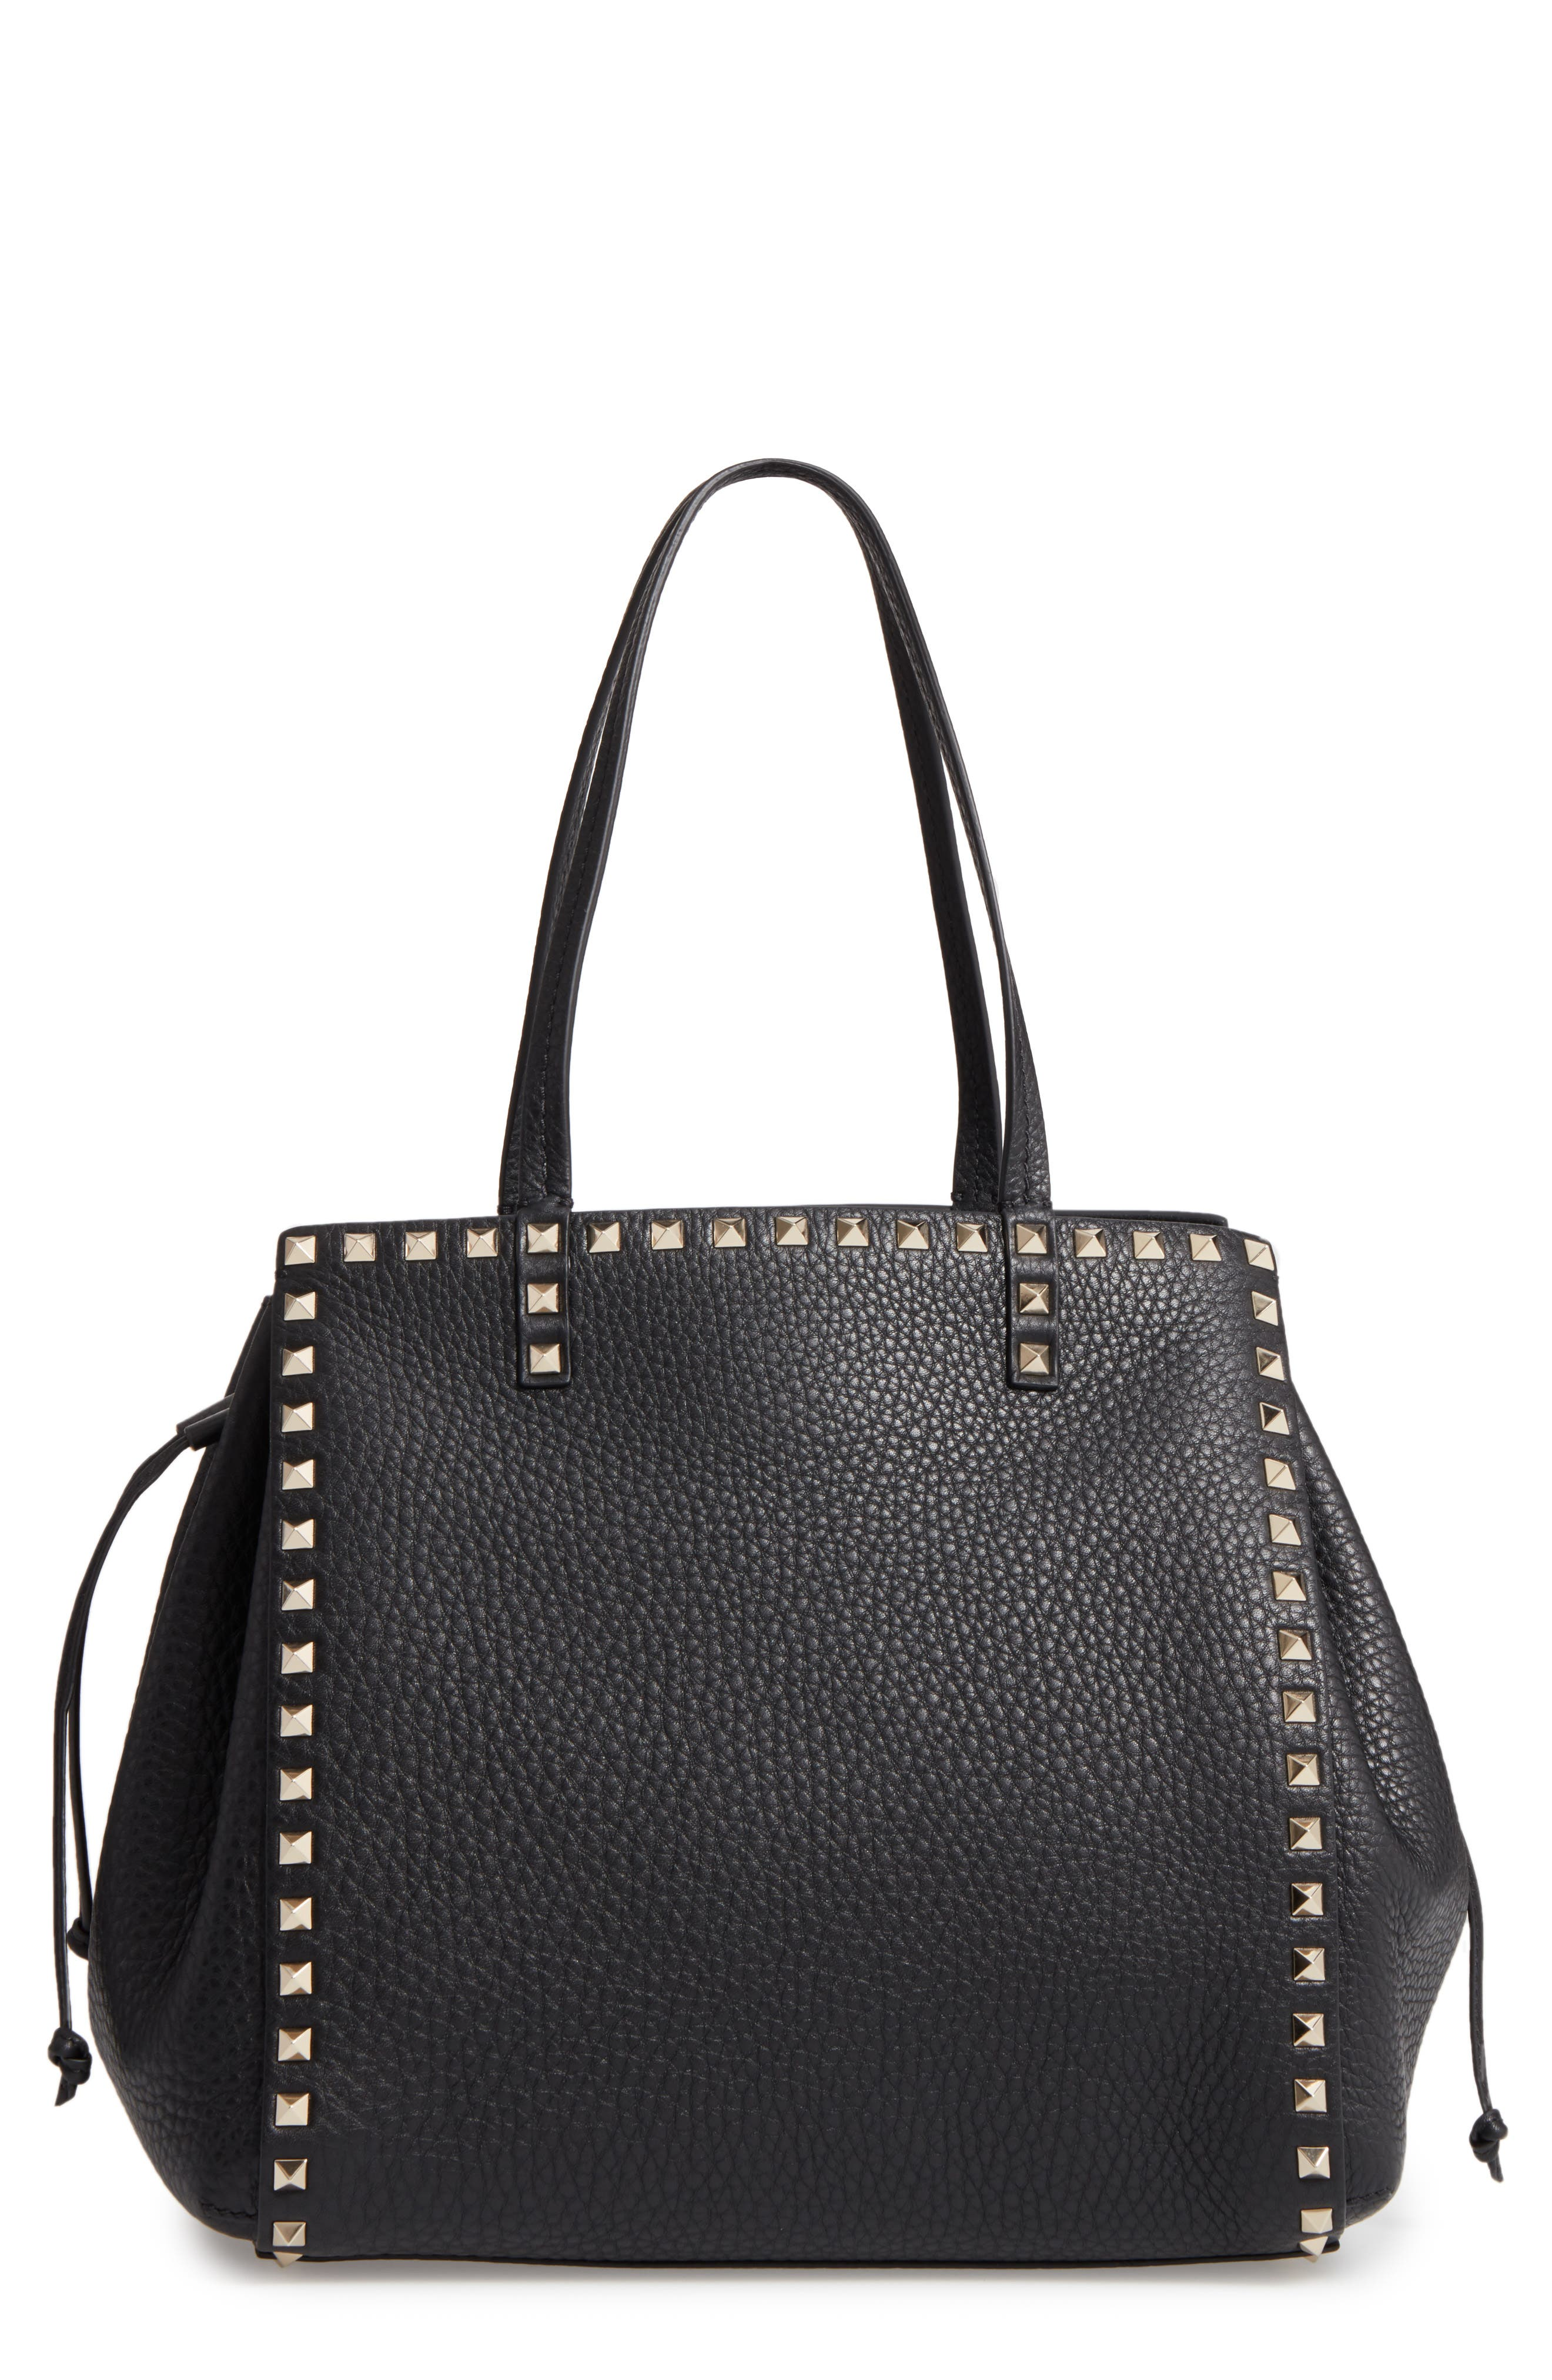 Valentino Rockstud Double Handle Leather Drawstring Tote